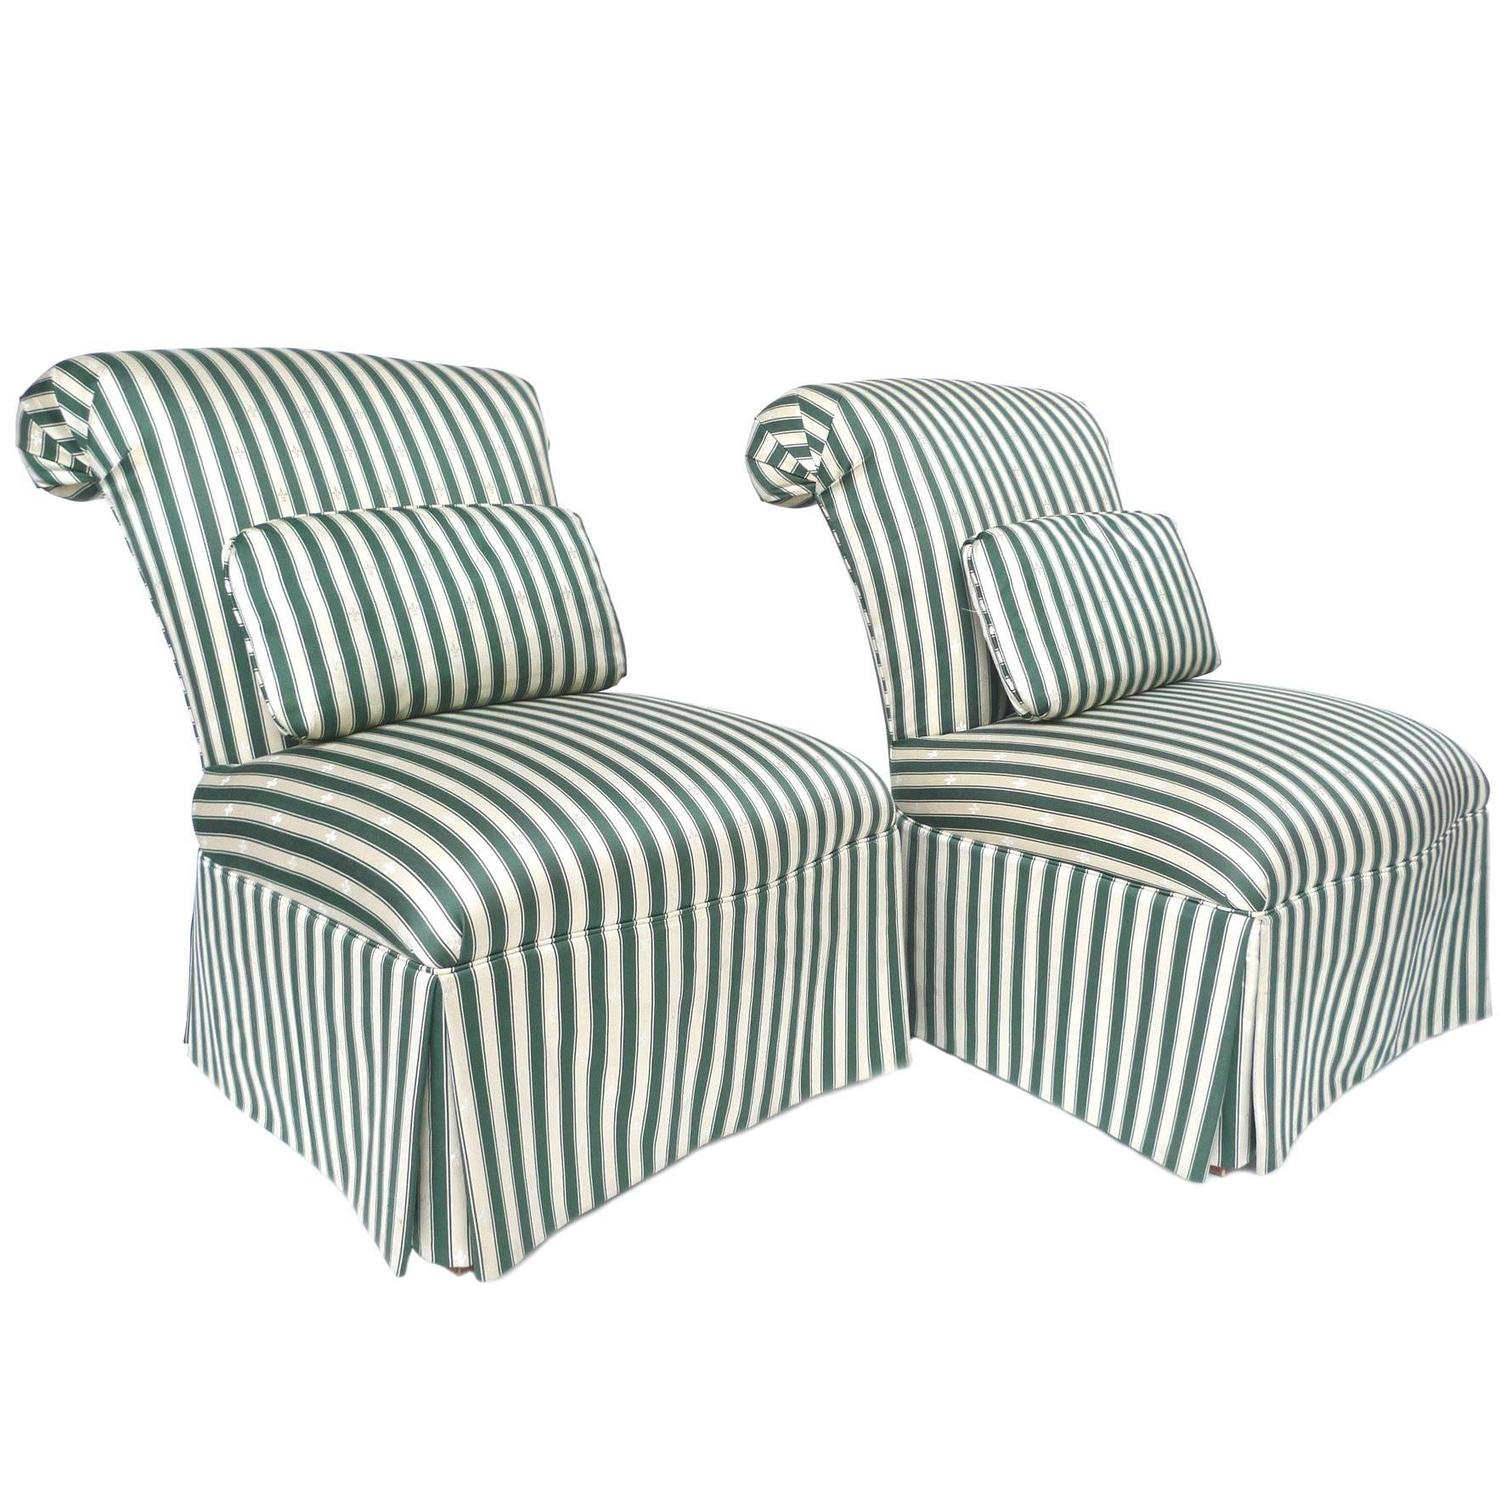 Pair of Henredon Striped Silk Slipper Chairs For Sale at 1stdibs